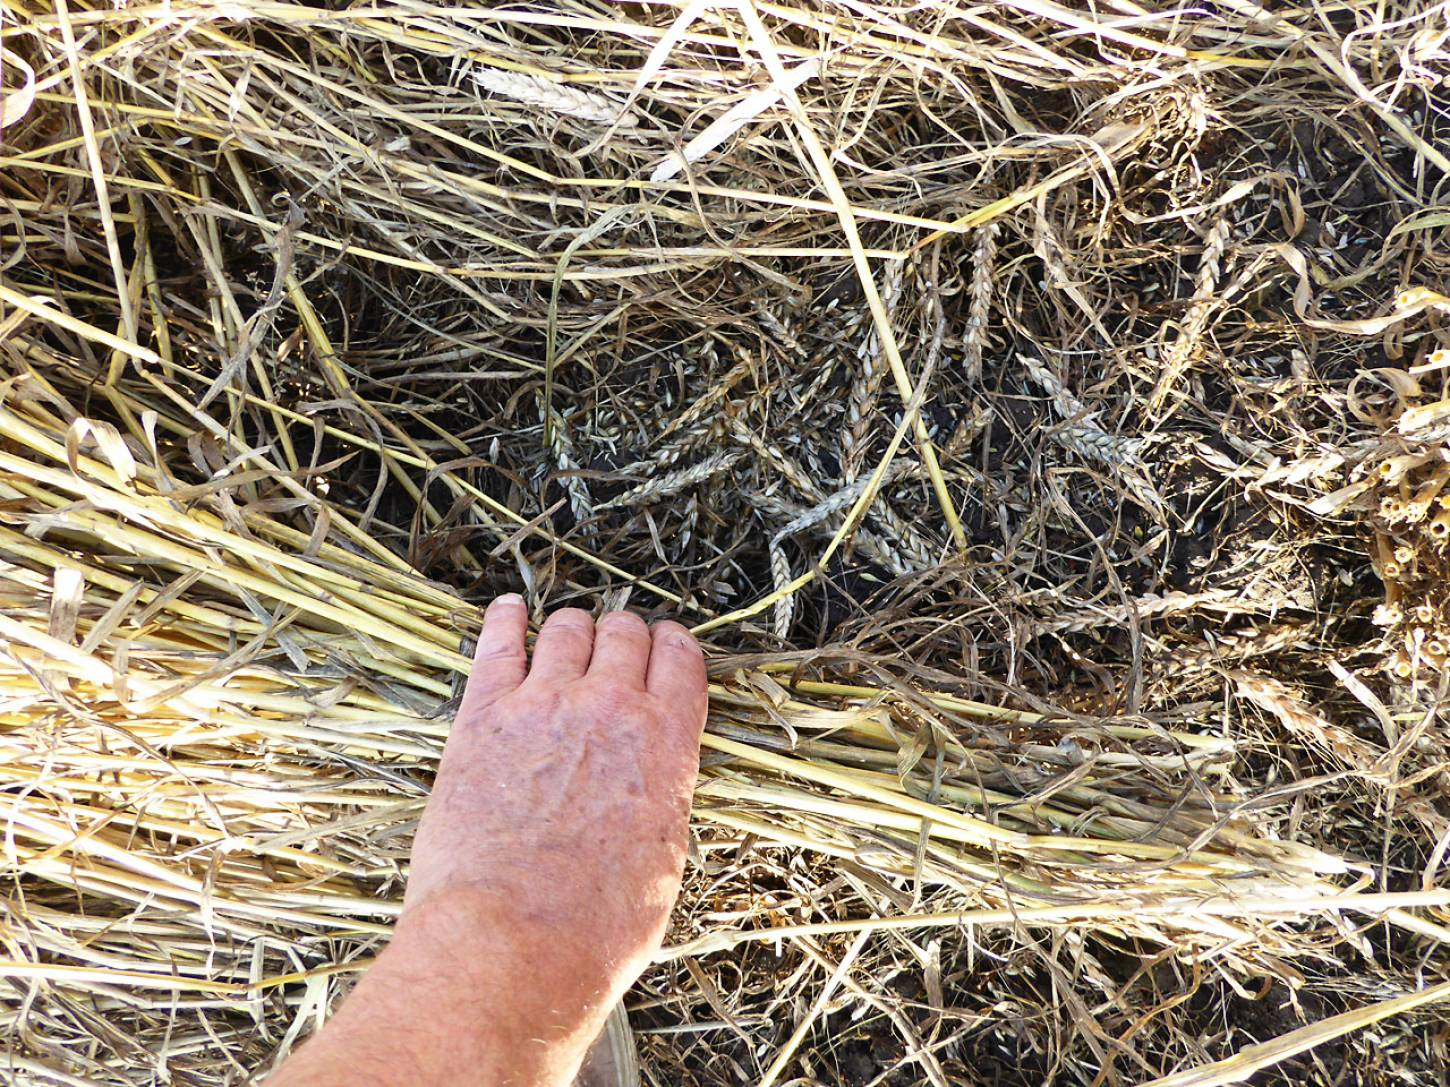 mice have made a grain store - plot harvest 2017 - 6:13pm&nbsp;25<sup>th</sup>&nbsp;Jul.&nbsp;'17